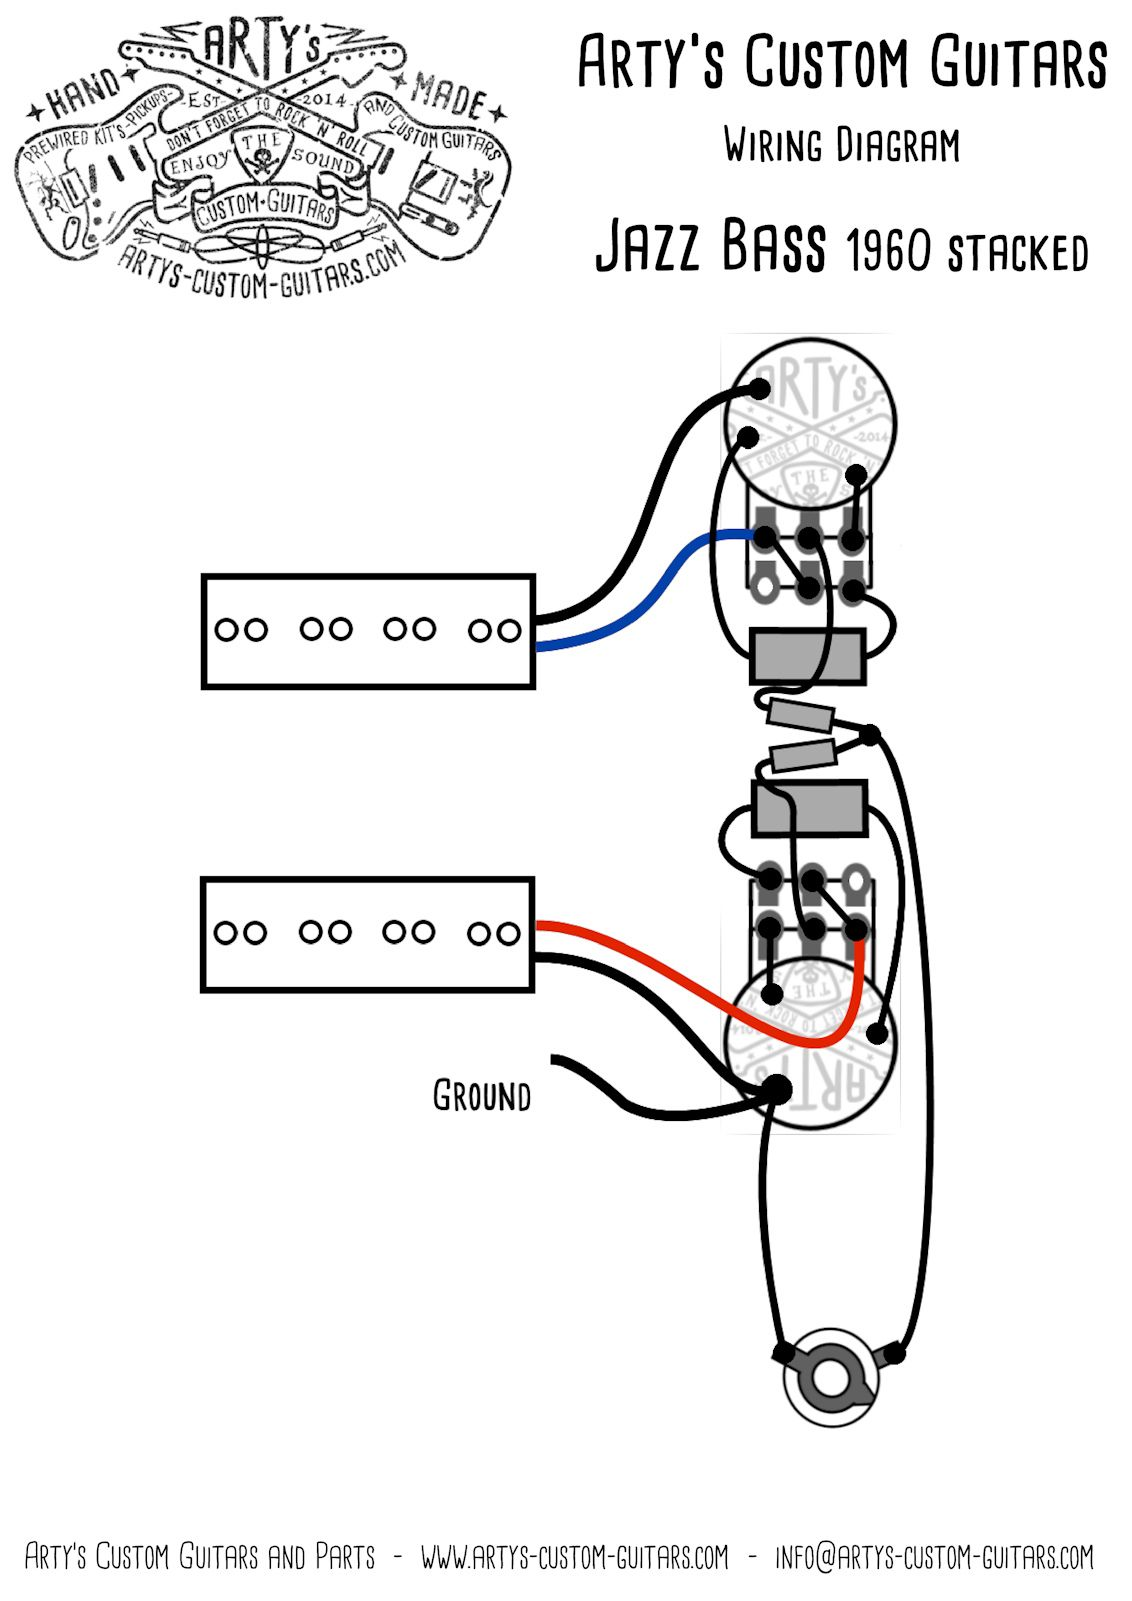 small resolution of arty s custom guitars vintage pre wired prewired kit wiring assembly harness arty jazz bass 1960